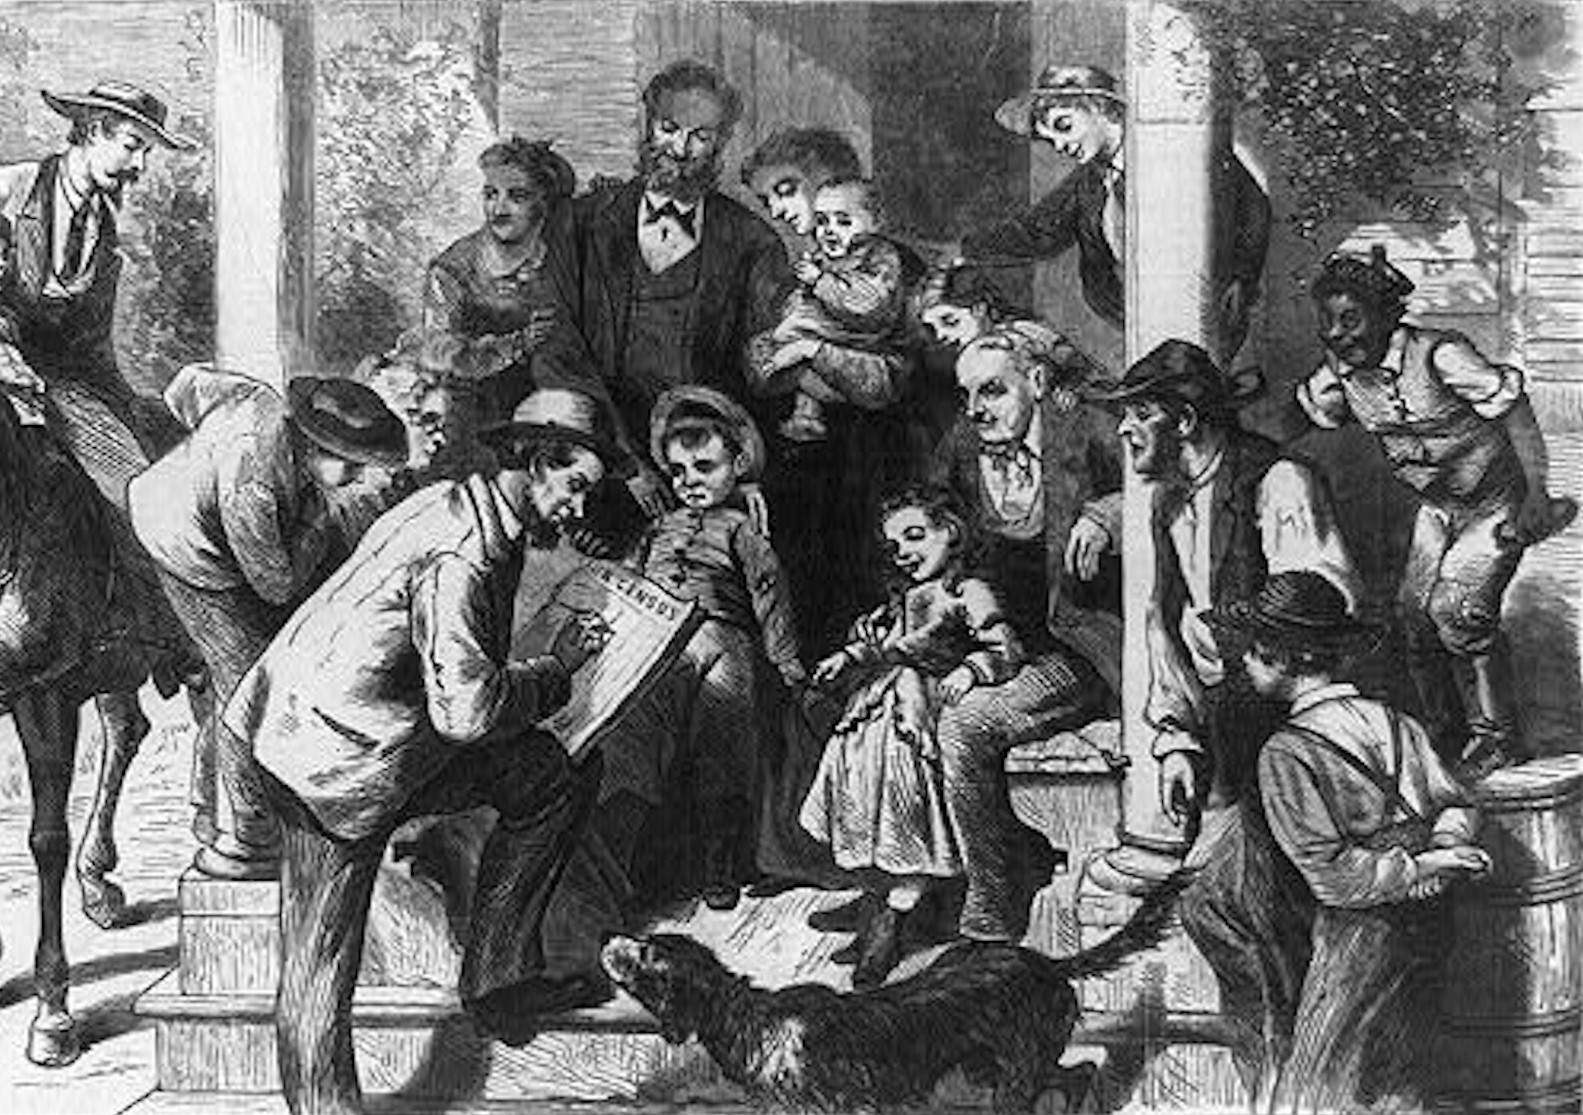 1870s drawing of a census taker outside of a building surrounded by group of adults, children, and a dog